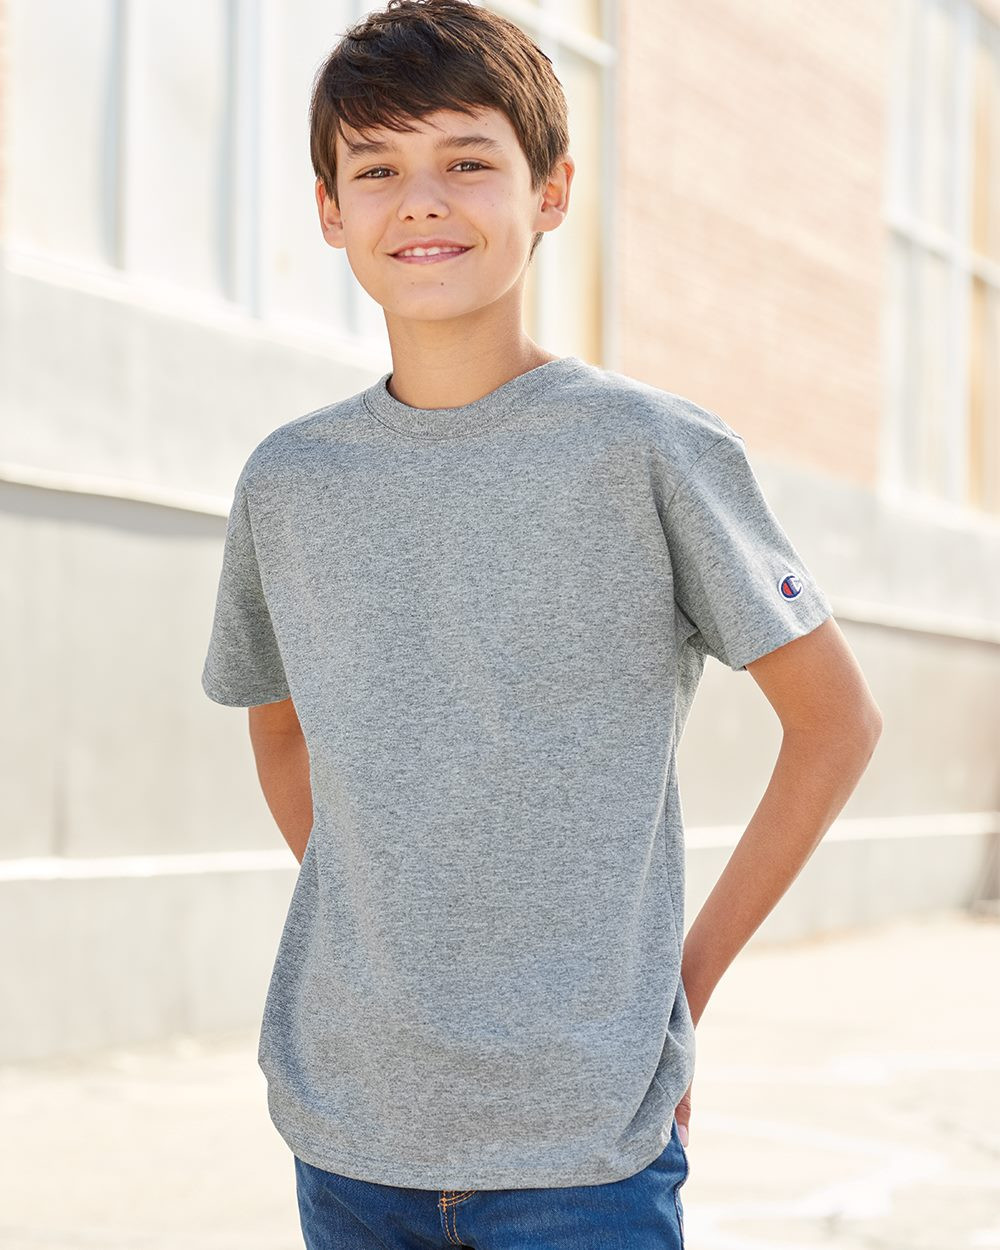 Champion - Youth Short Sleeve Tagless T-Shirt - T435